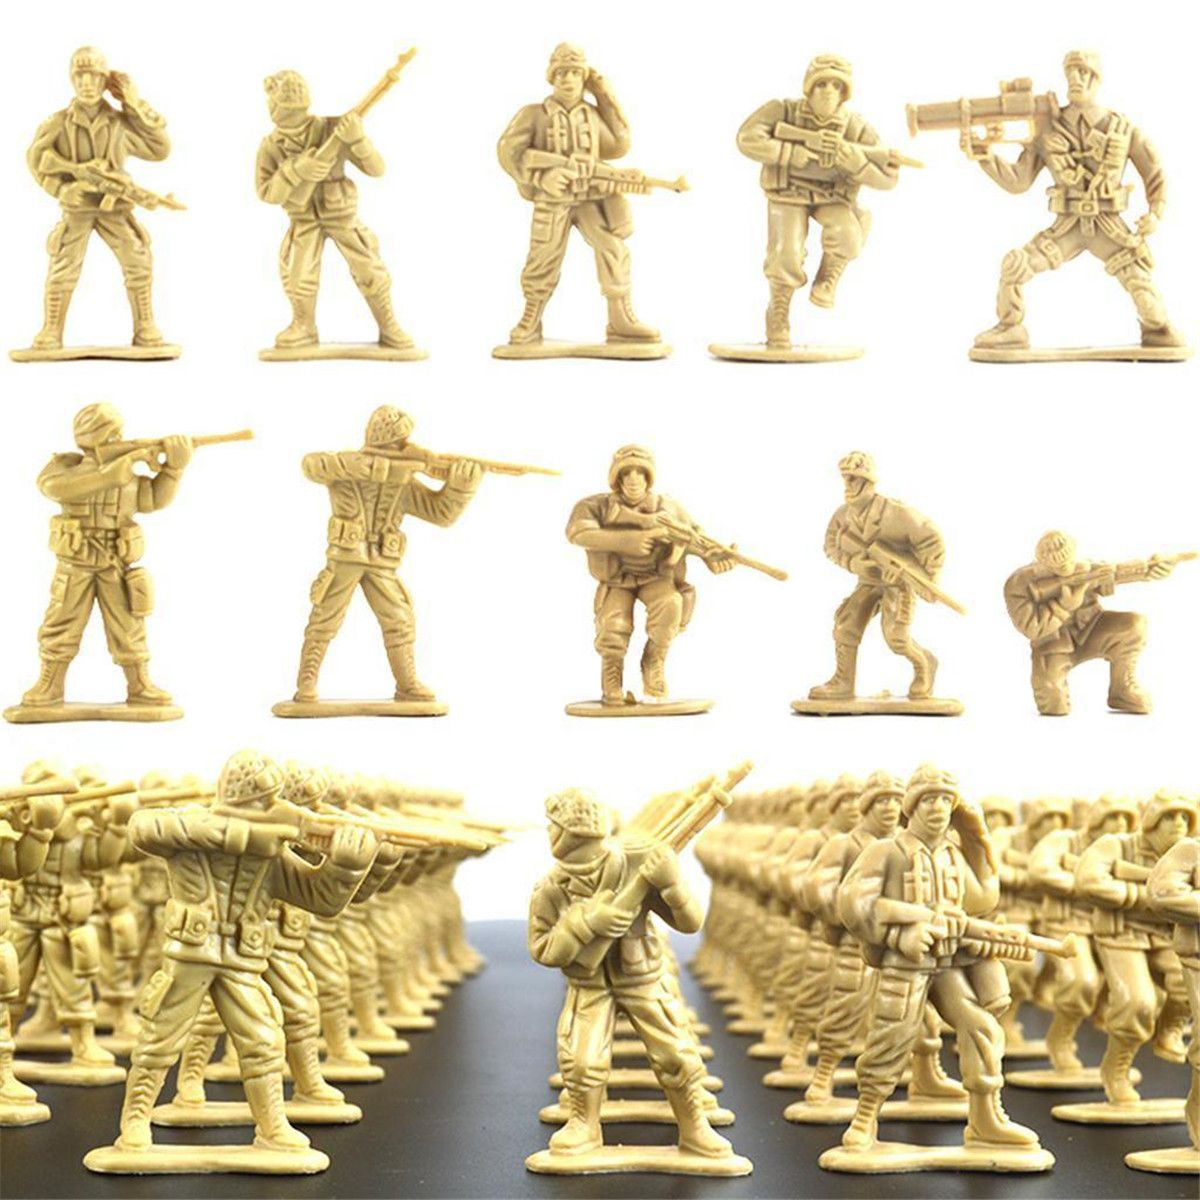 100Pcs/Set Plastic Military Toy Soldiers Model Toys Kit Army Men Figures Action Toy Figures Accessories Children Gifts100Pcs/Set Plastic Military Toy Soldiers Model Toys Kit Army Men Figures Action Toy Figures Accessories Children Gifts